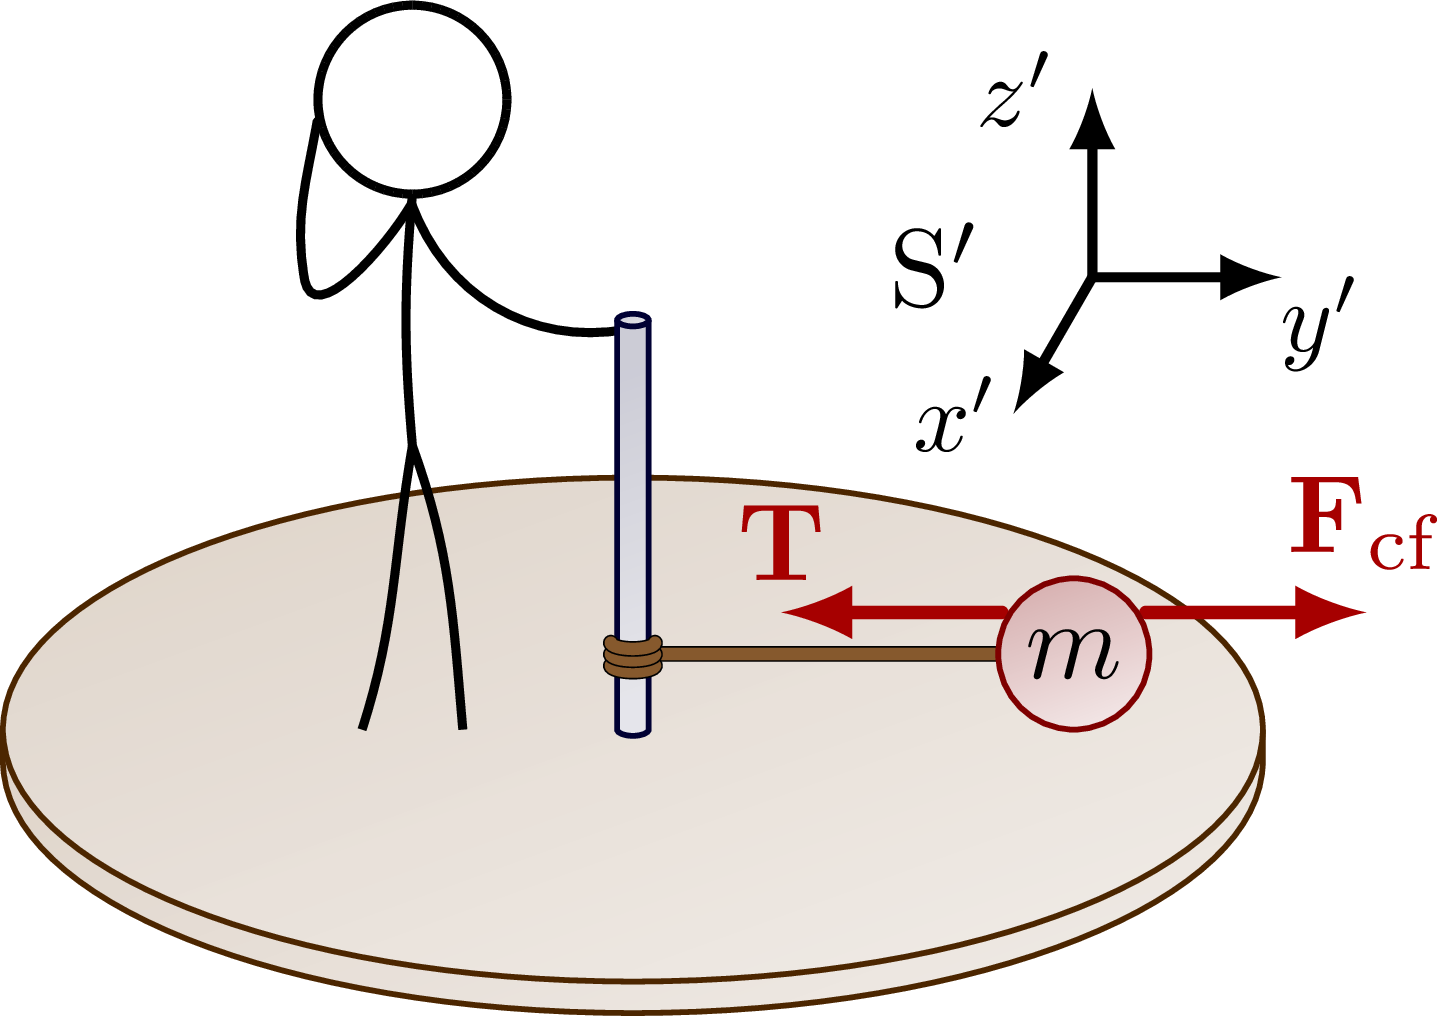 reference_frame_rotational-004.png